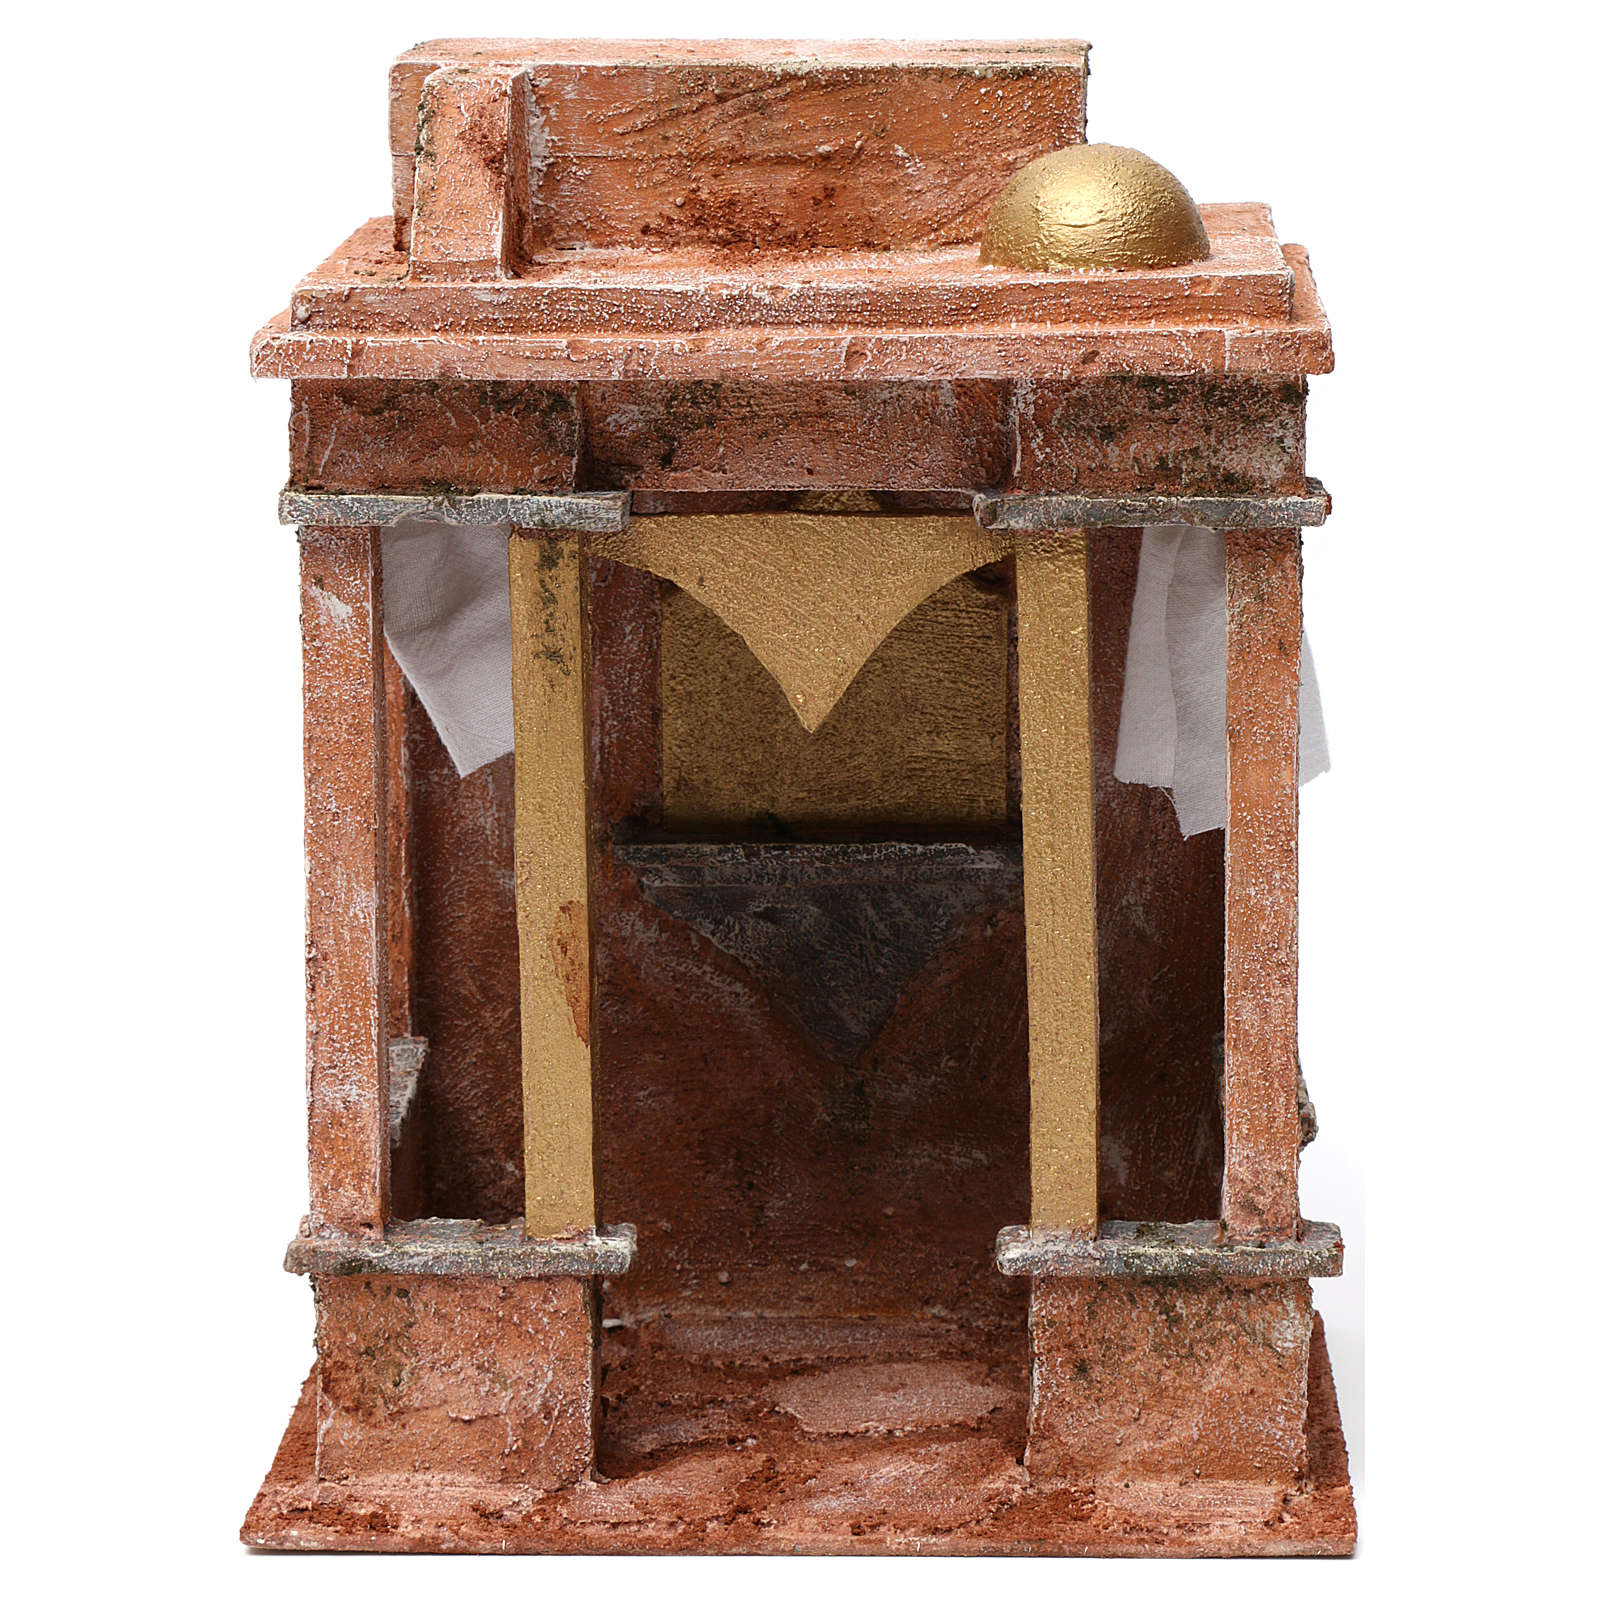 Arab setting with dome, curtains and pillars for 12 cm nativity scene 4